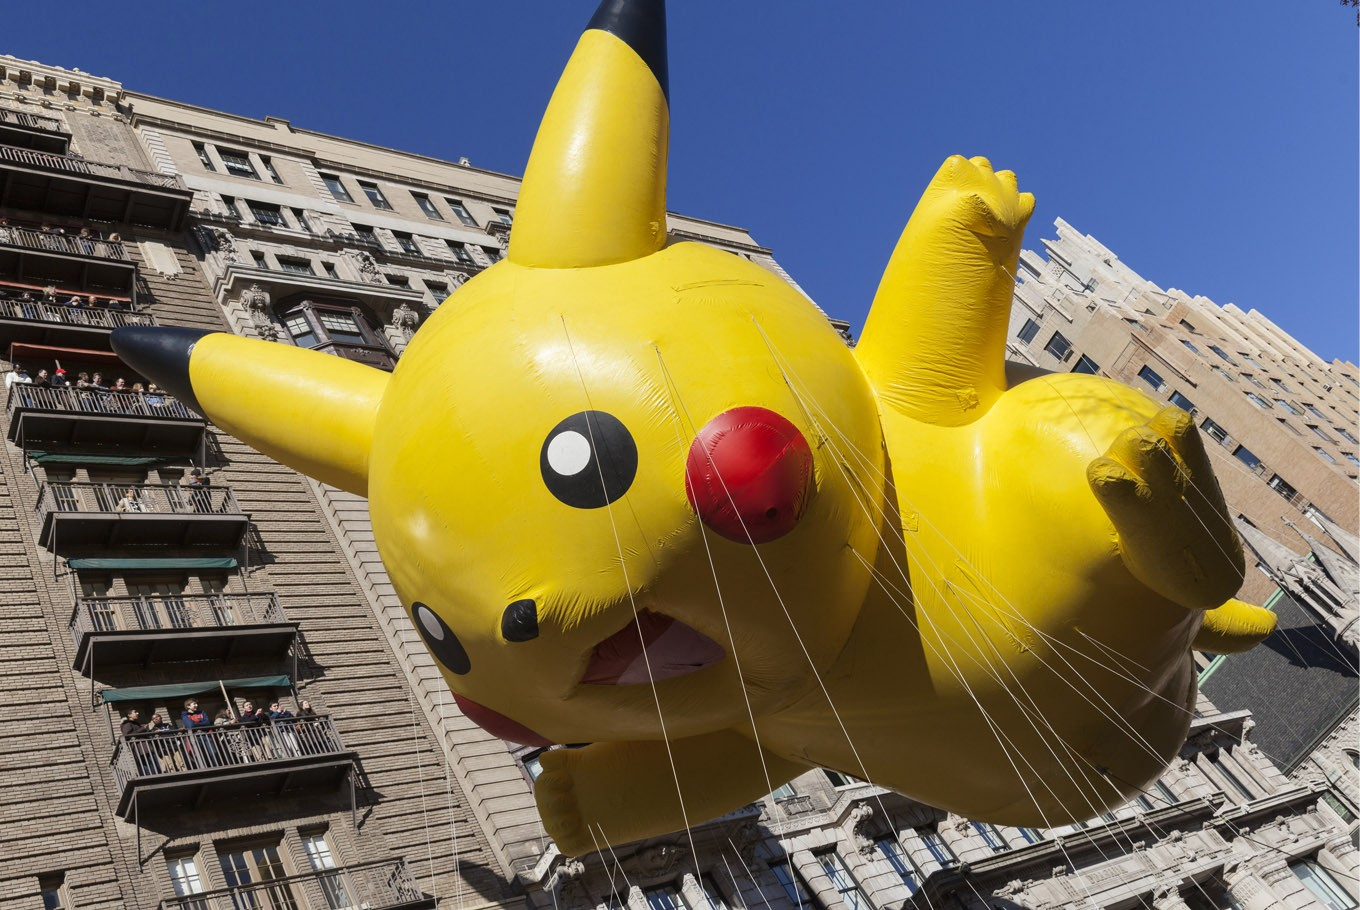 Nintendo's decision to rename Pikachu stirs protest in Hong Kong